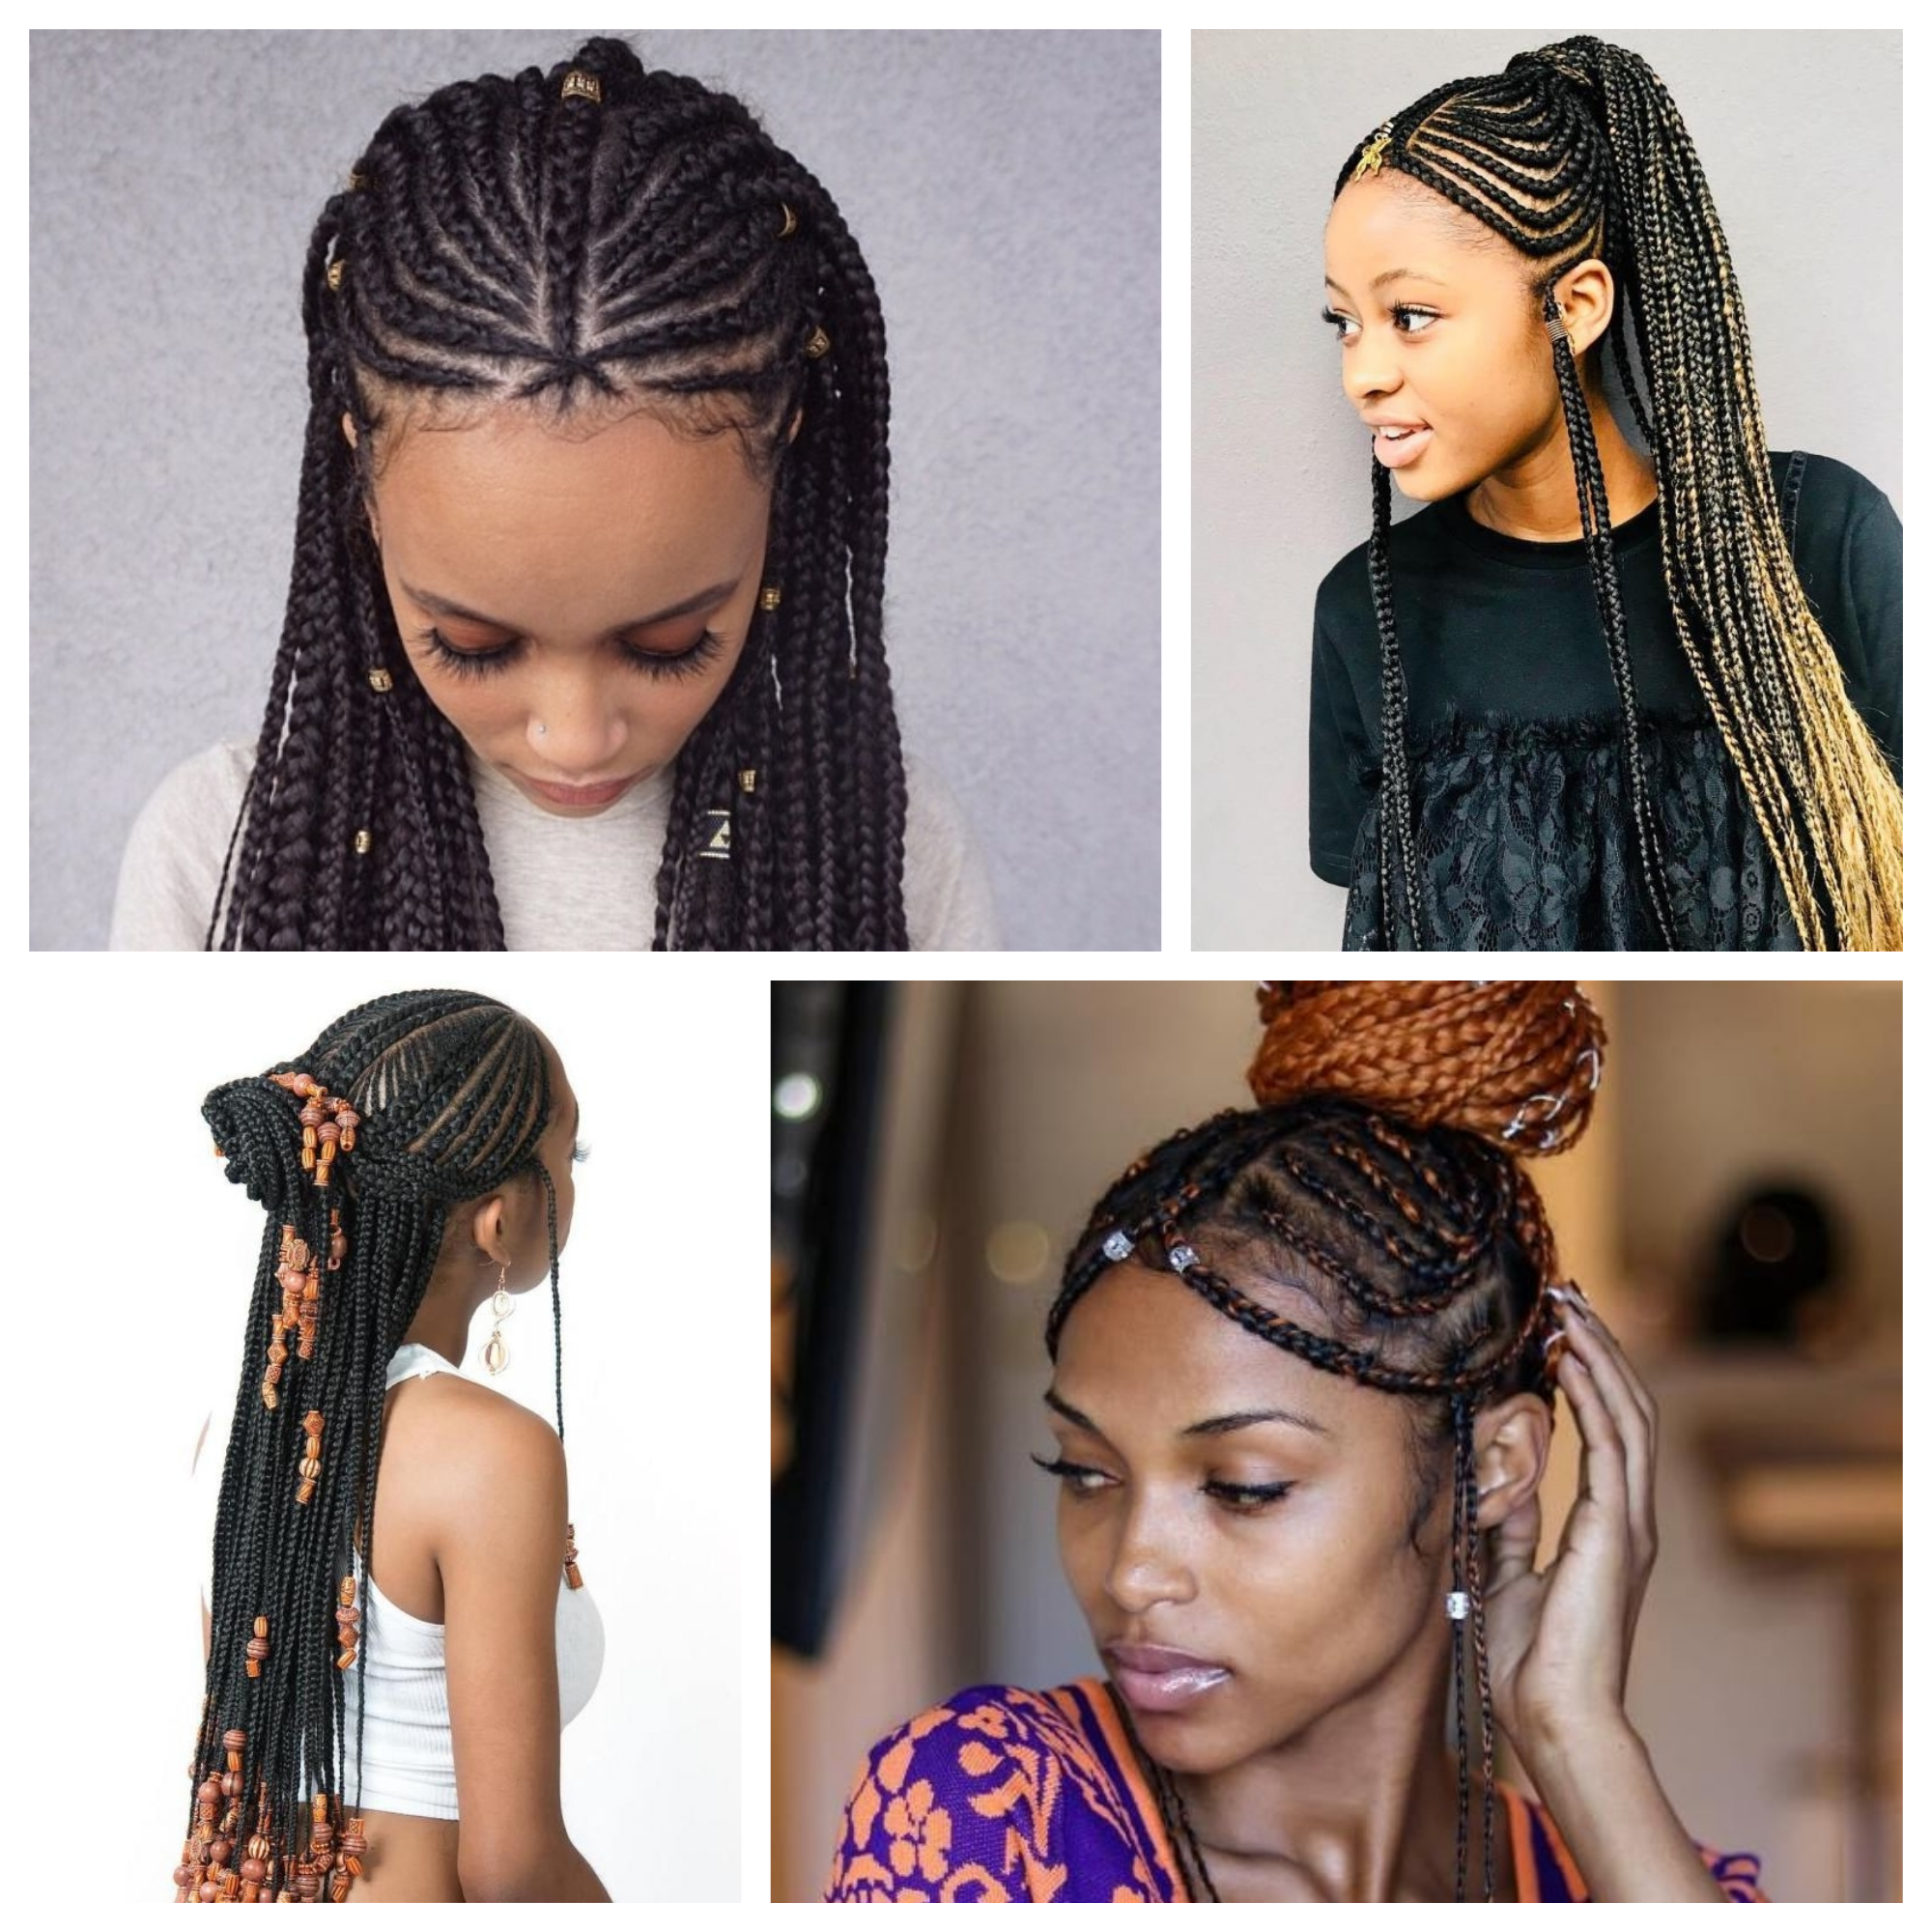 Trendy Braided Crown Hairstyles With Bright Beads With Regard To Braided Hairstyles (View 4 of 20)